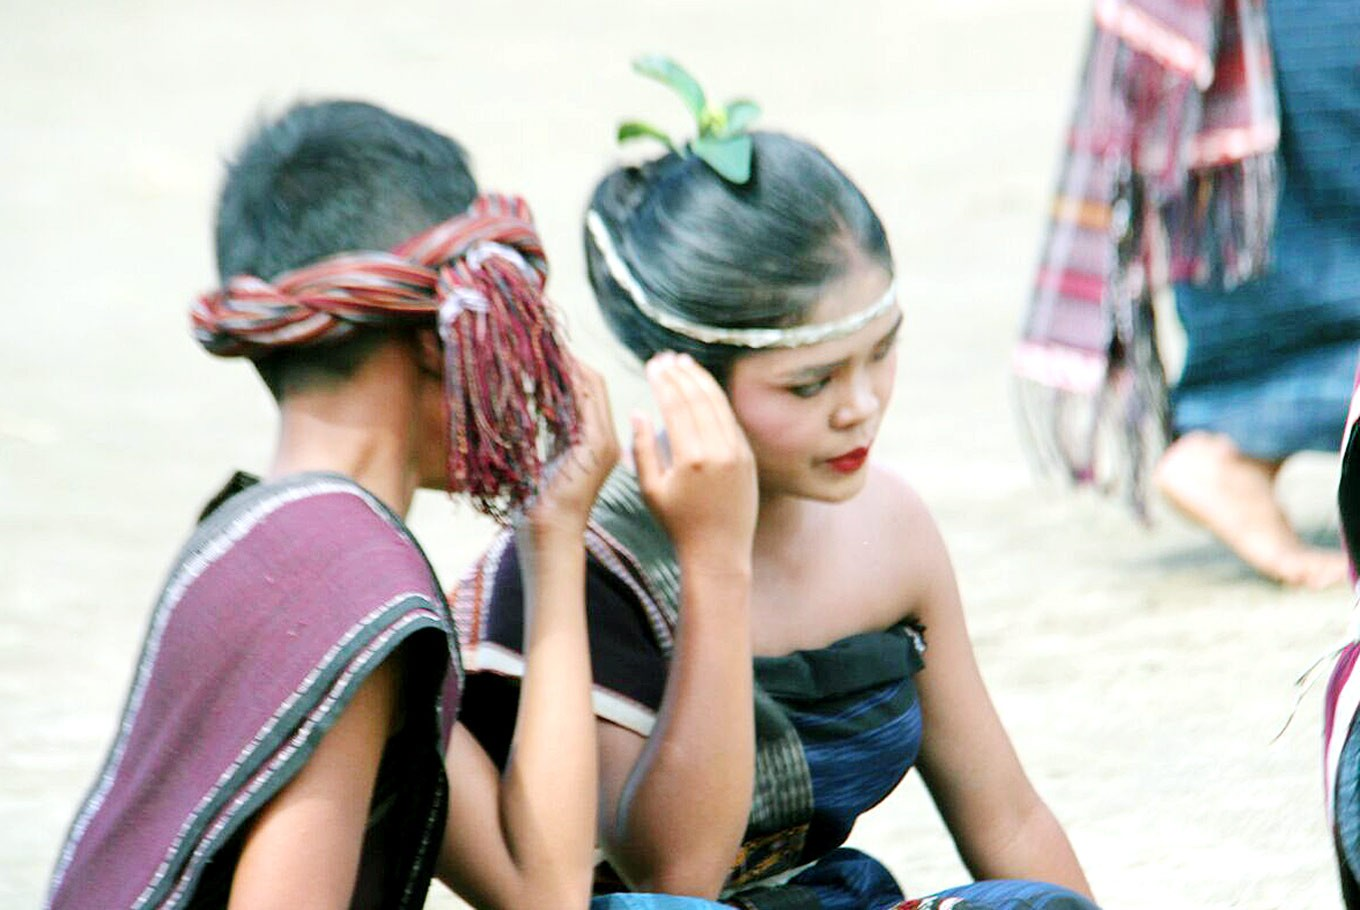 Gondang Naposo: A festival to find marriage partners